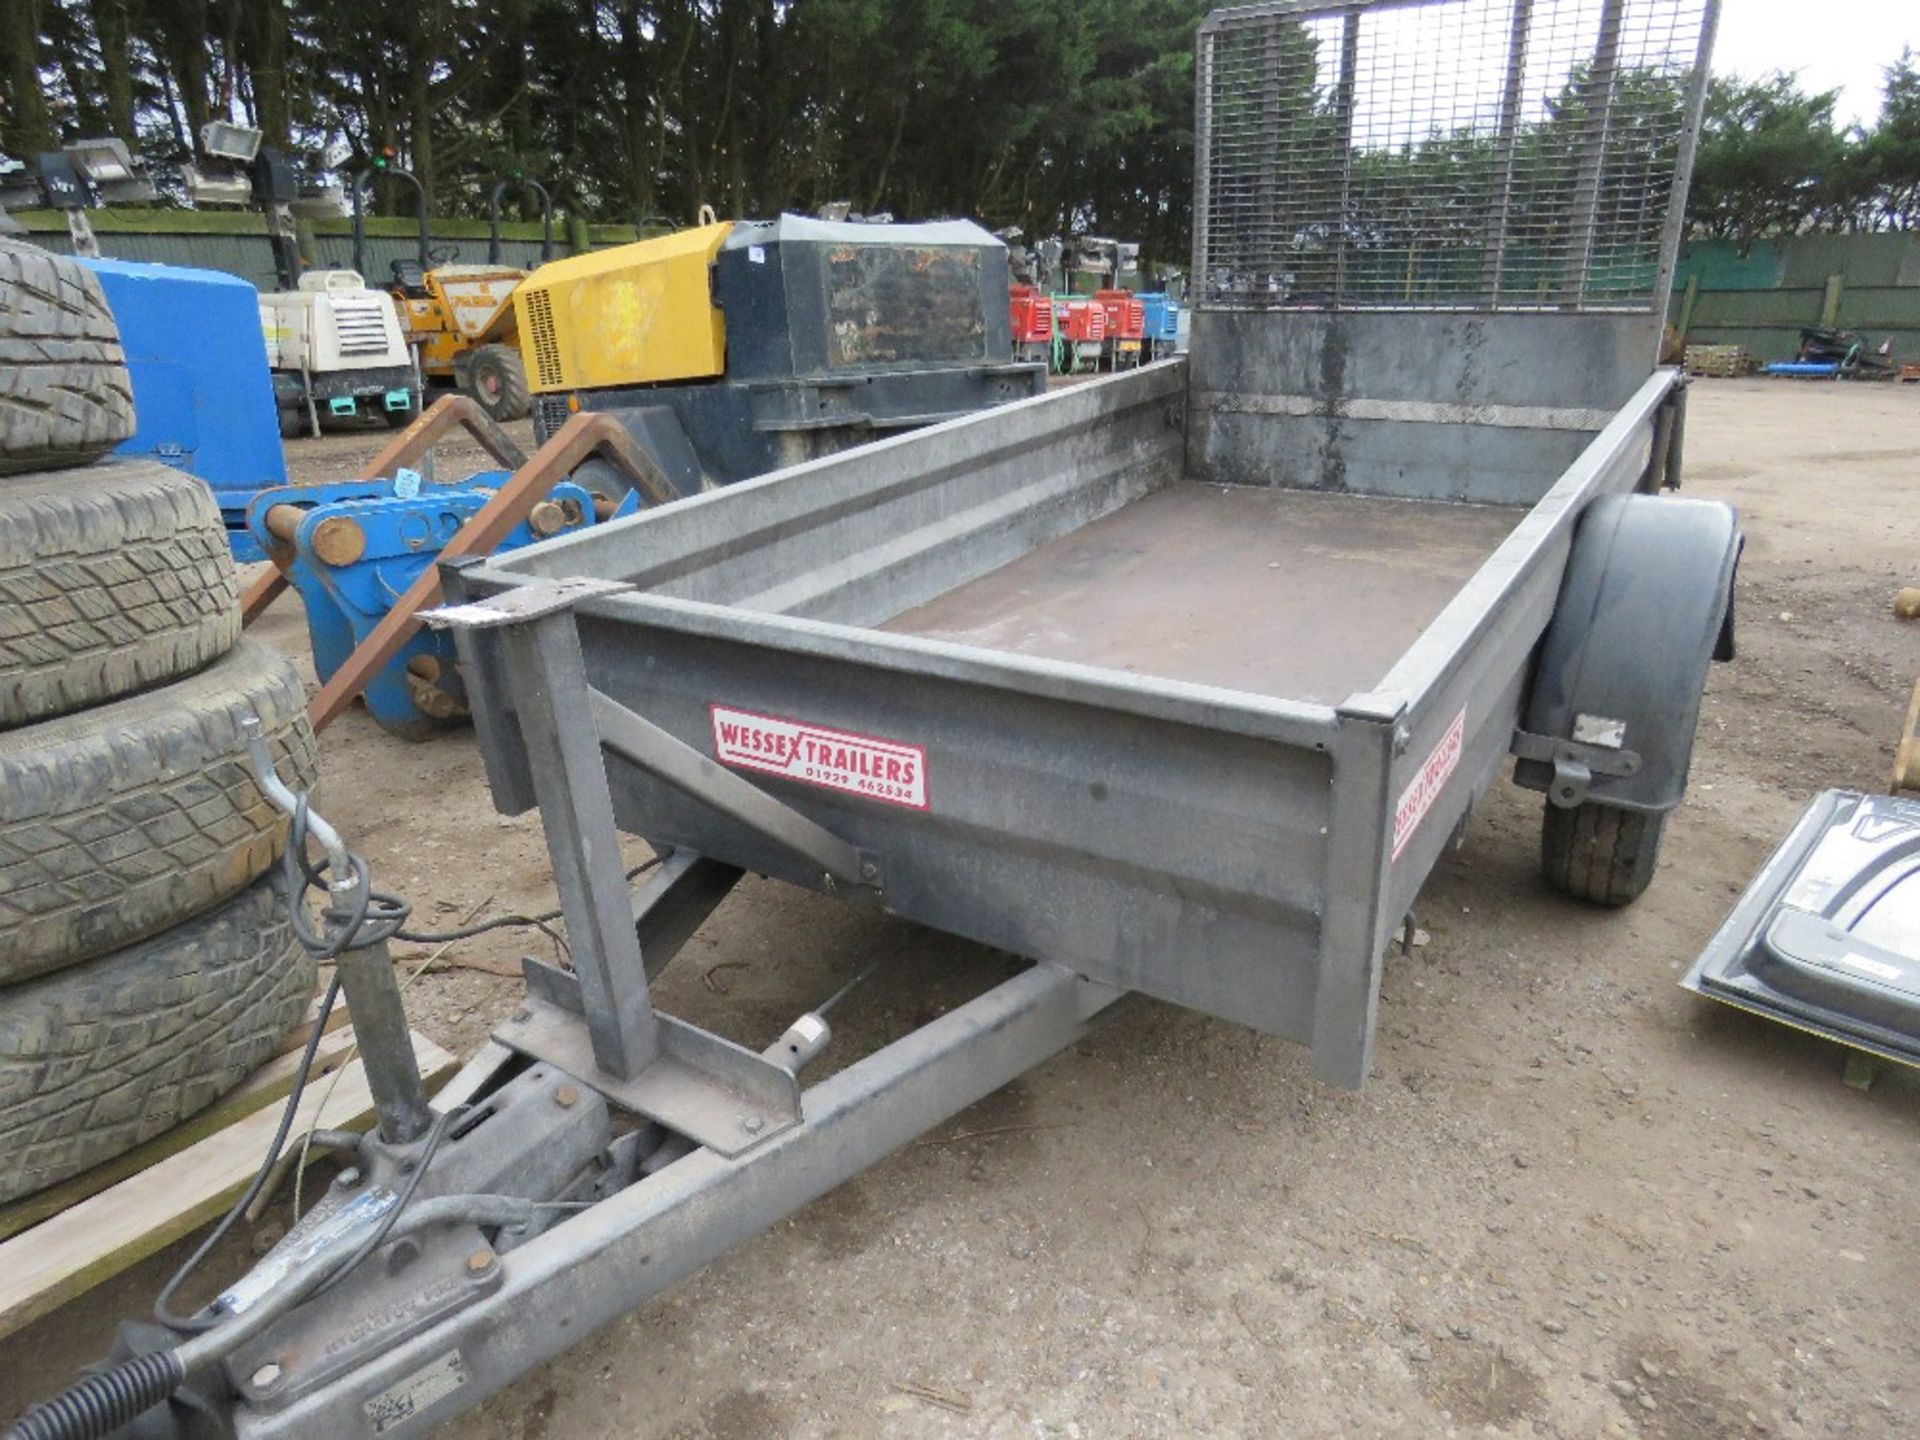 Lot 203 - WESSEX 1800KG RATED SINGEL AXLED TRAILER 8FT X 4FT APPROX WITH DROP REAR RAMP. SN:6269501